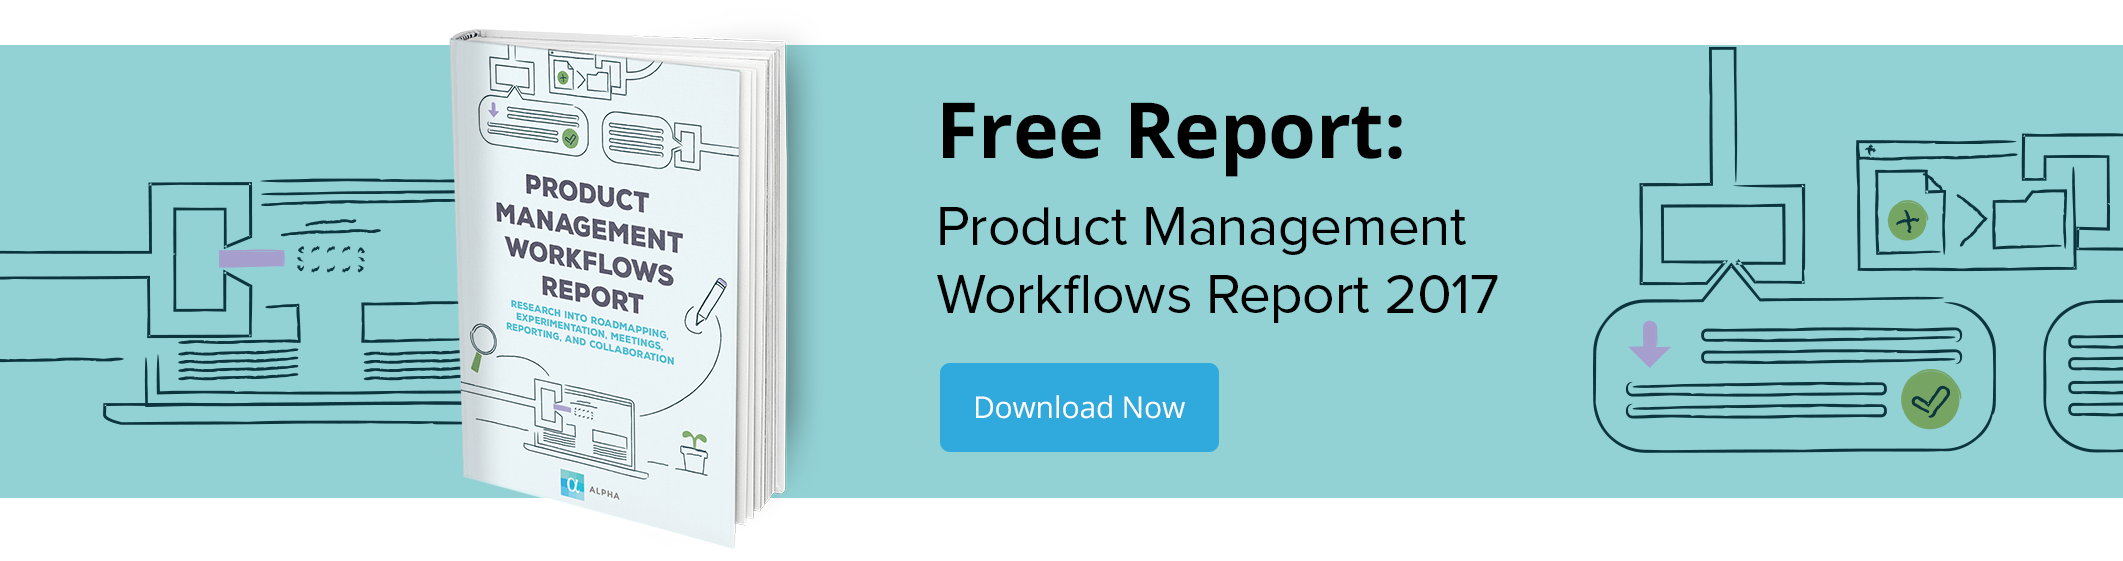 Product Management Workflows Report